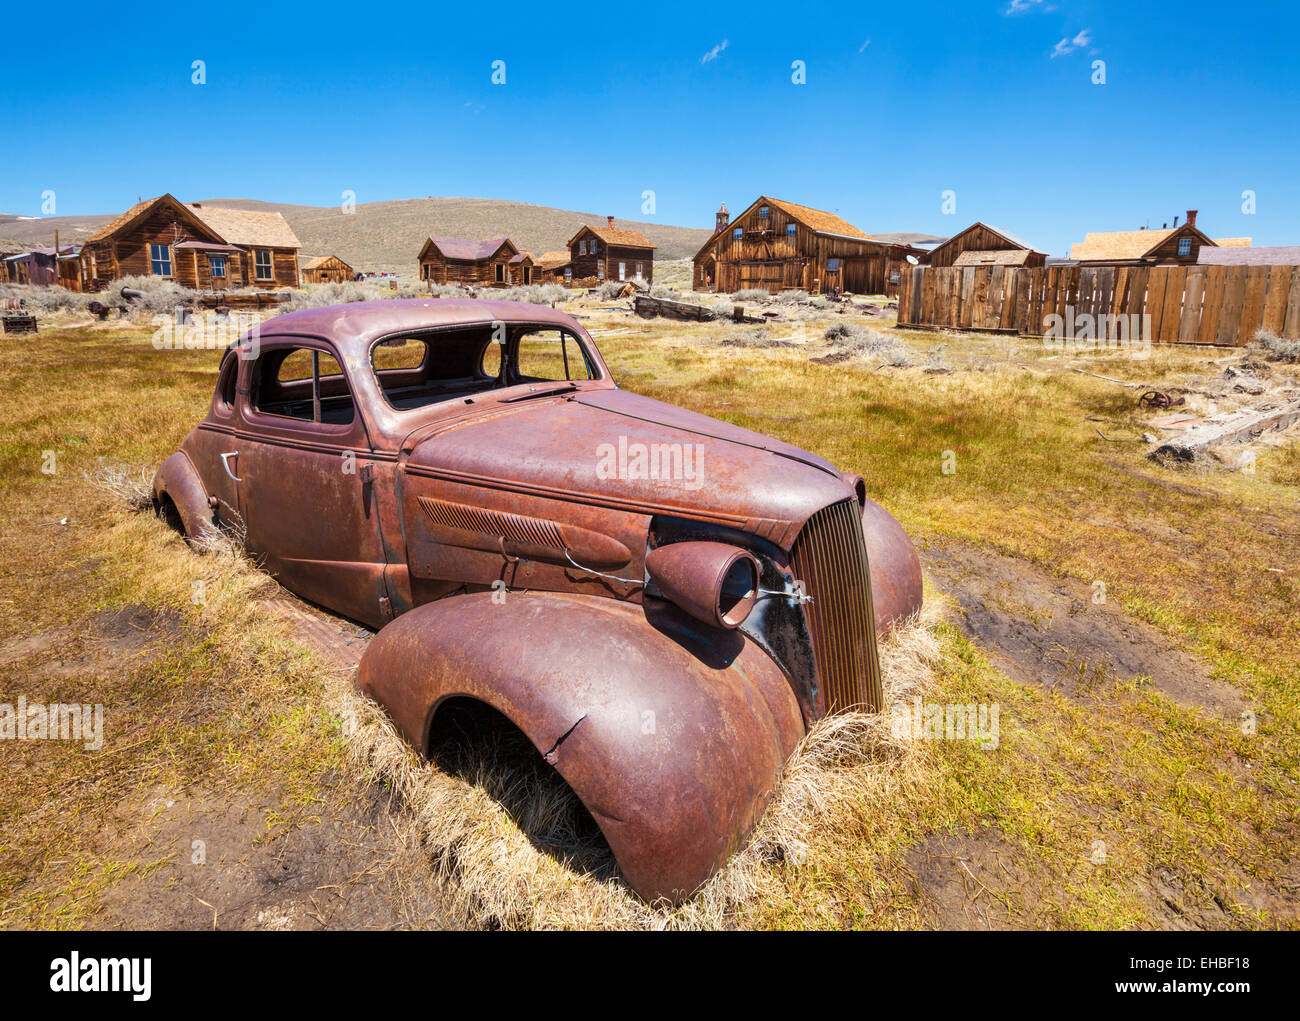 Rusting car in Bodie ghost town Bodie State Historic Park California USA United States of America Stock Photo